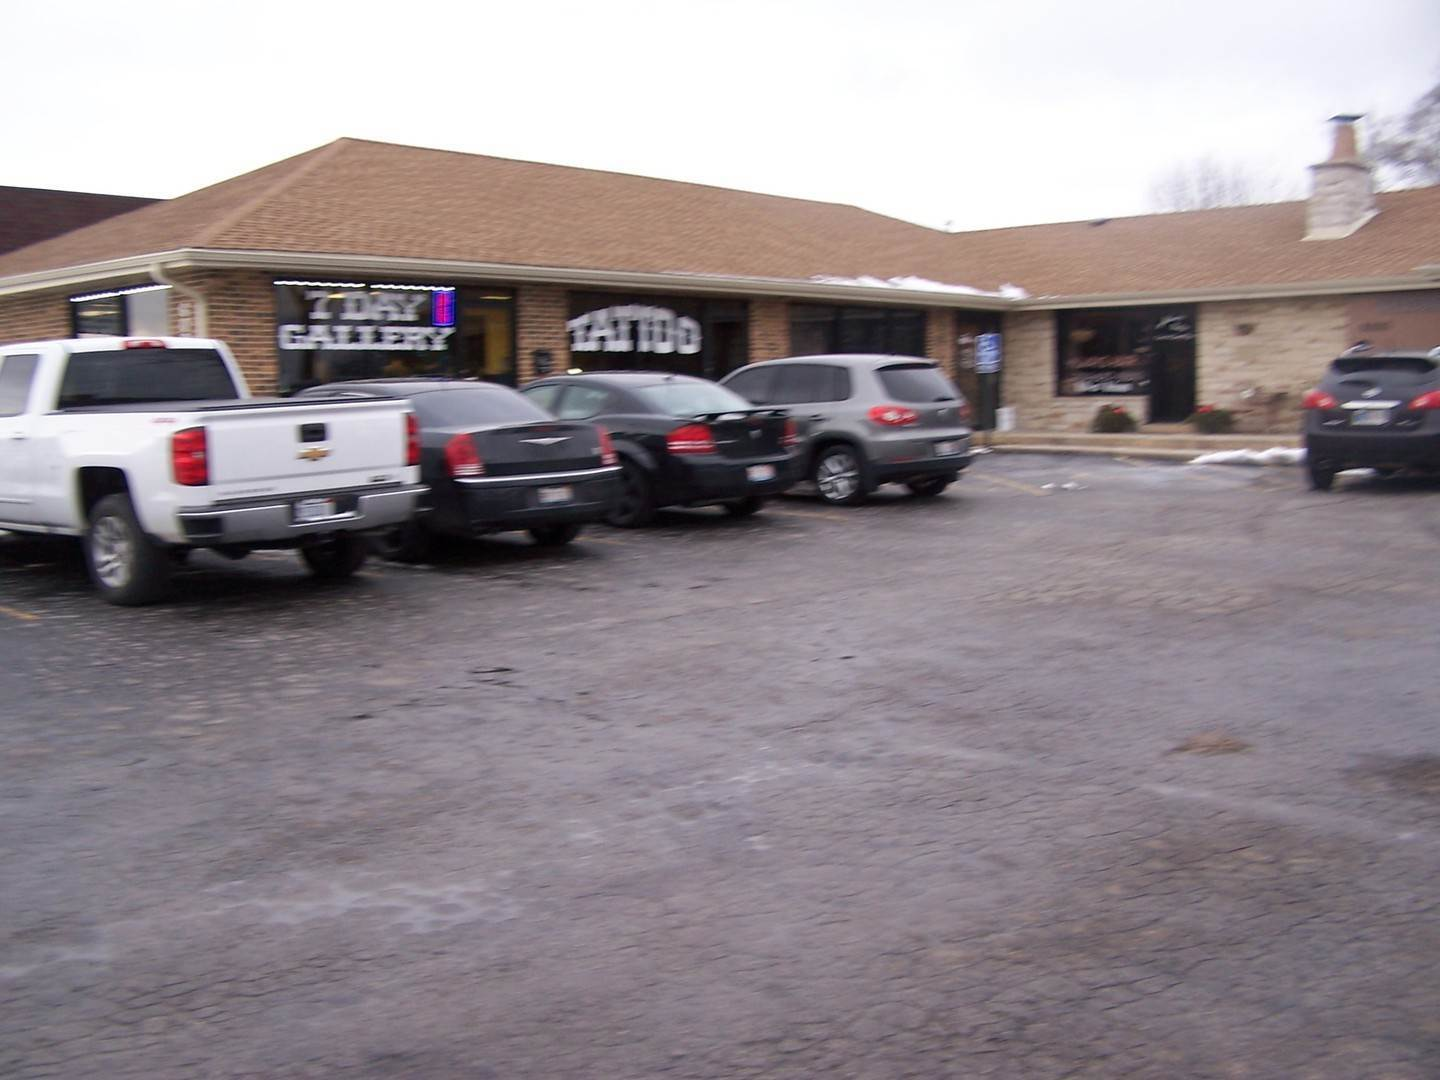 Commercial for Sale at 6000 W 159th Street Oak Forest, Illinois 60452 United States